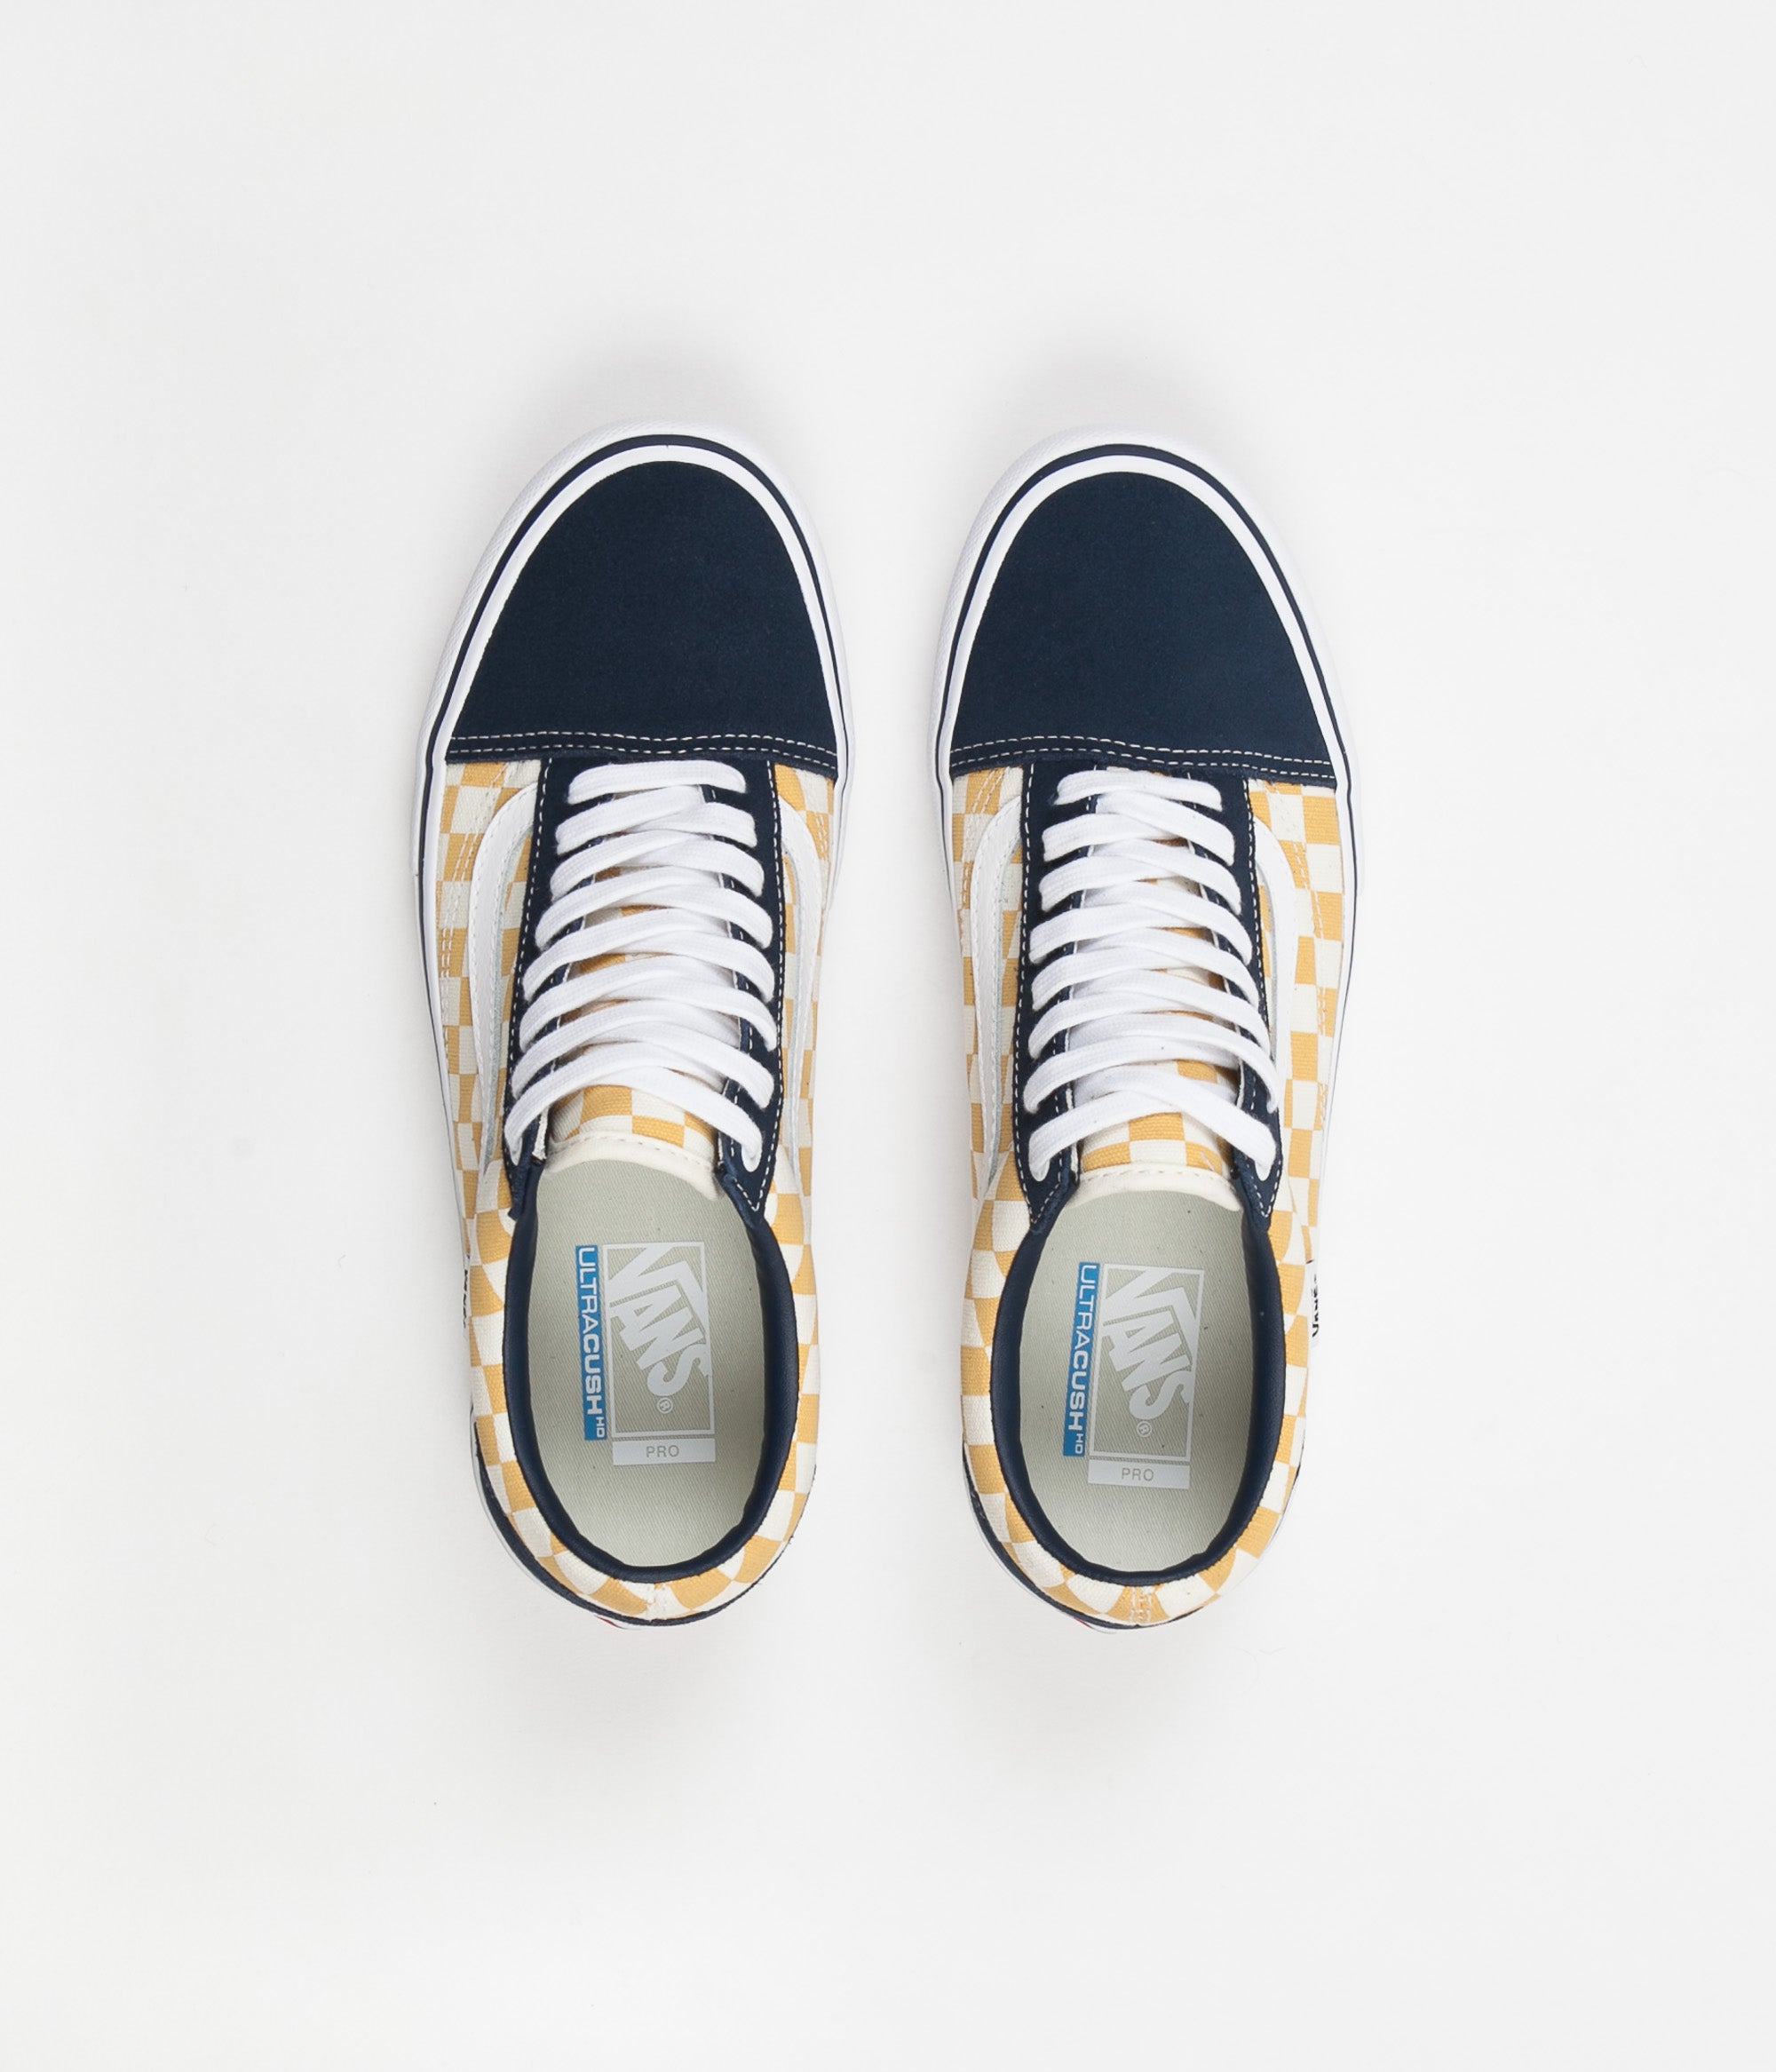 d80705e6267bac Vans Old Skool Pro Checkerboard Shoes - Dress Blues   Ochre ...